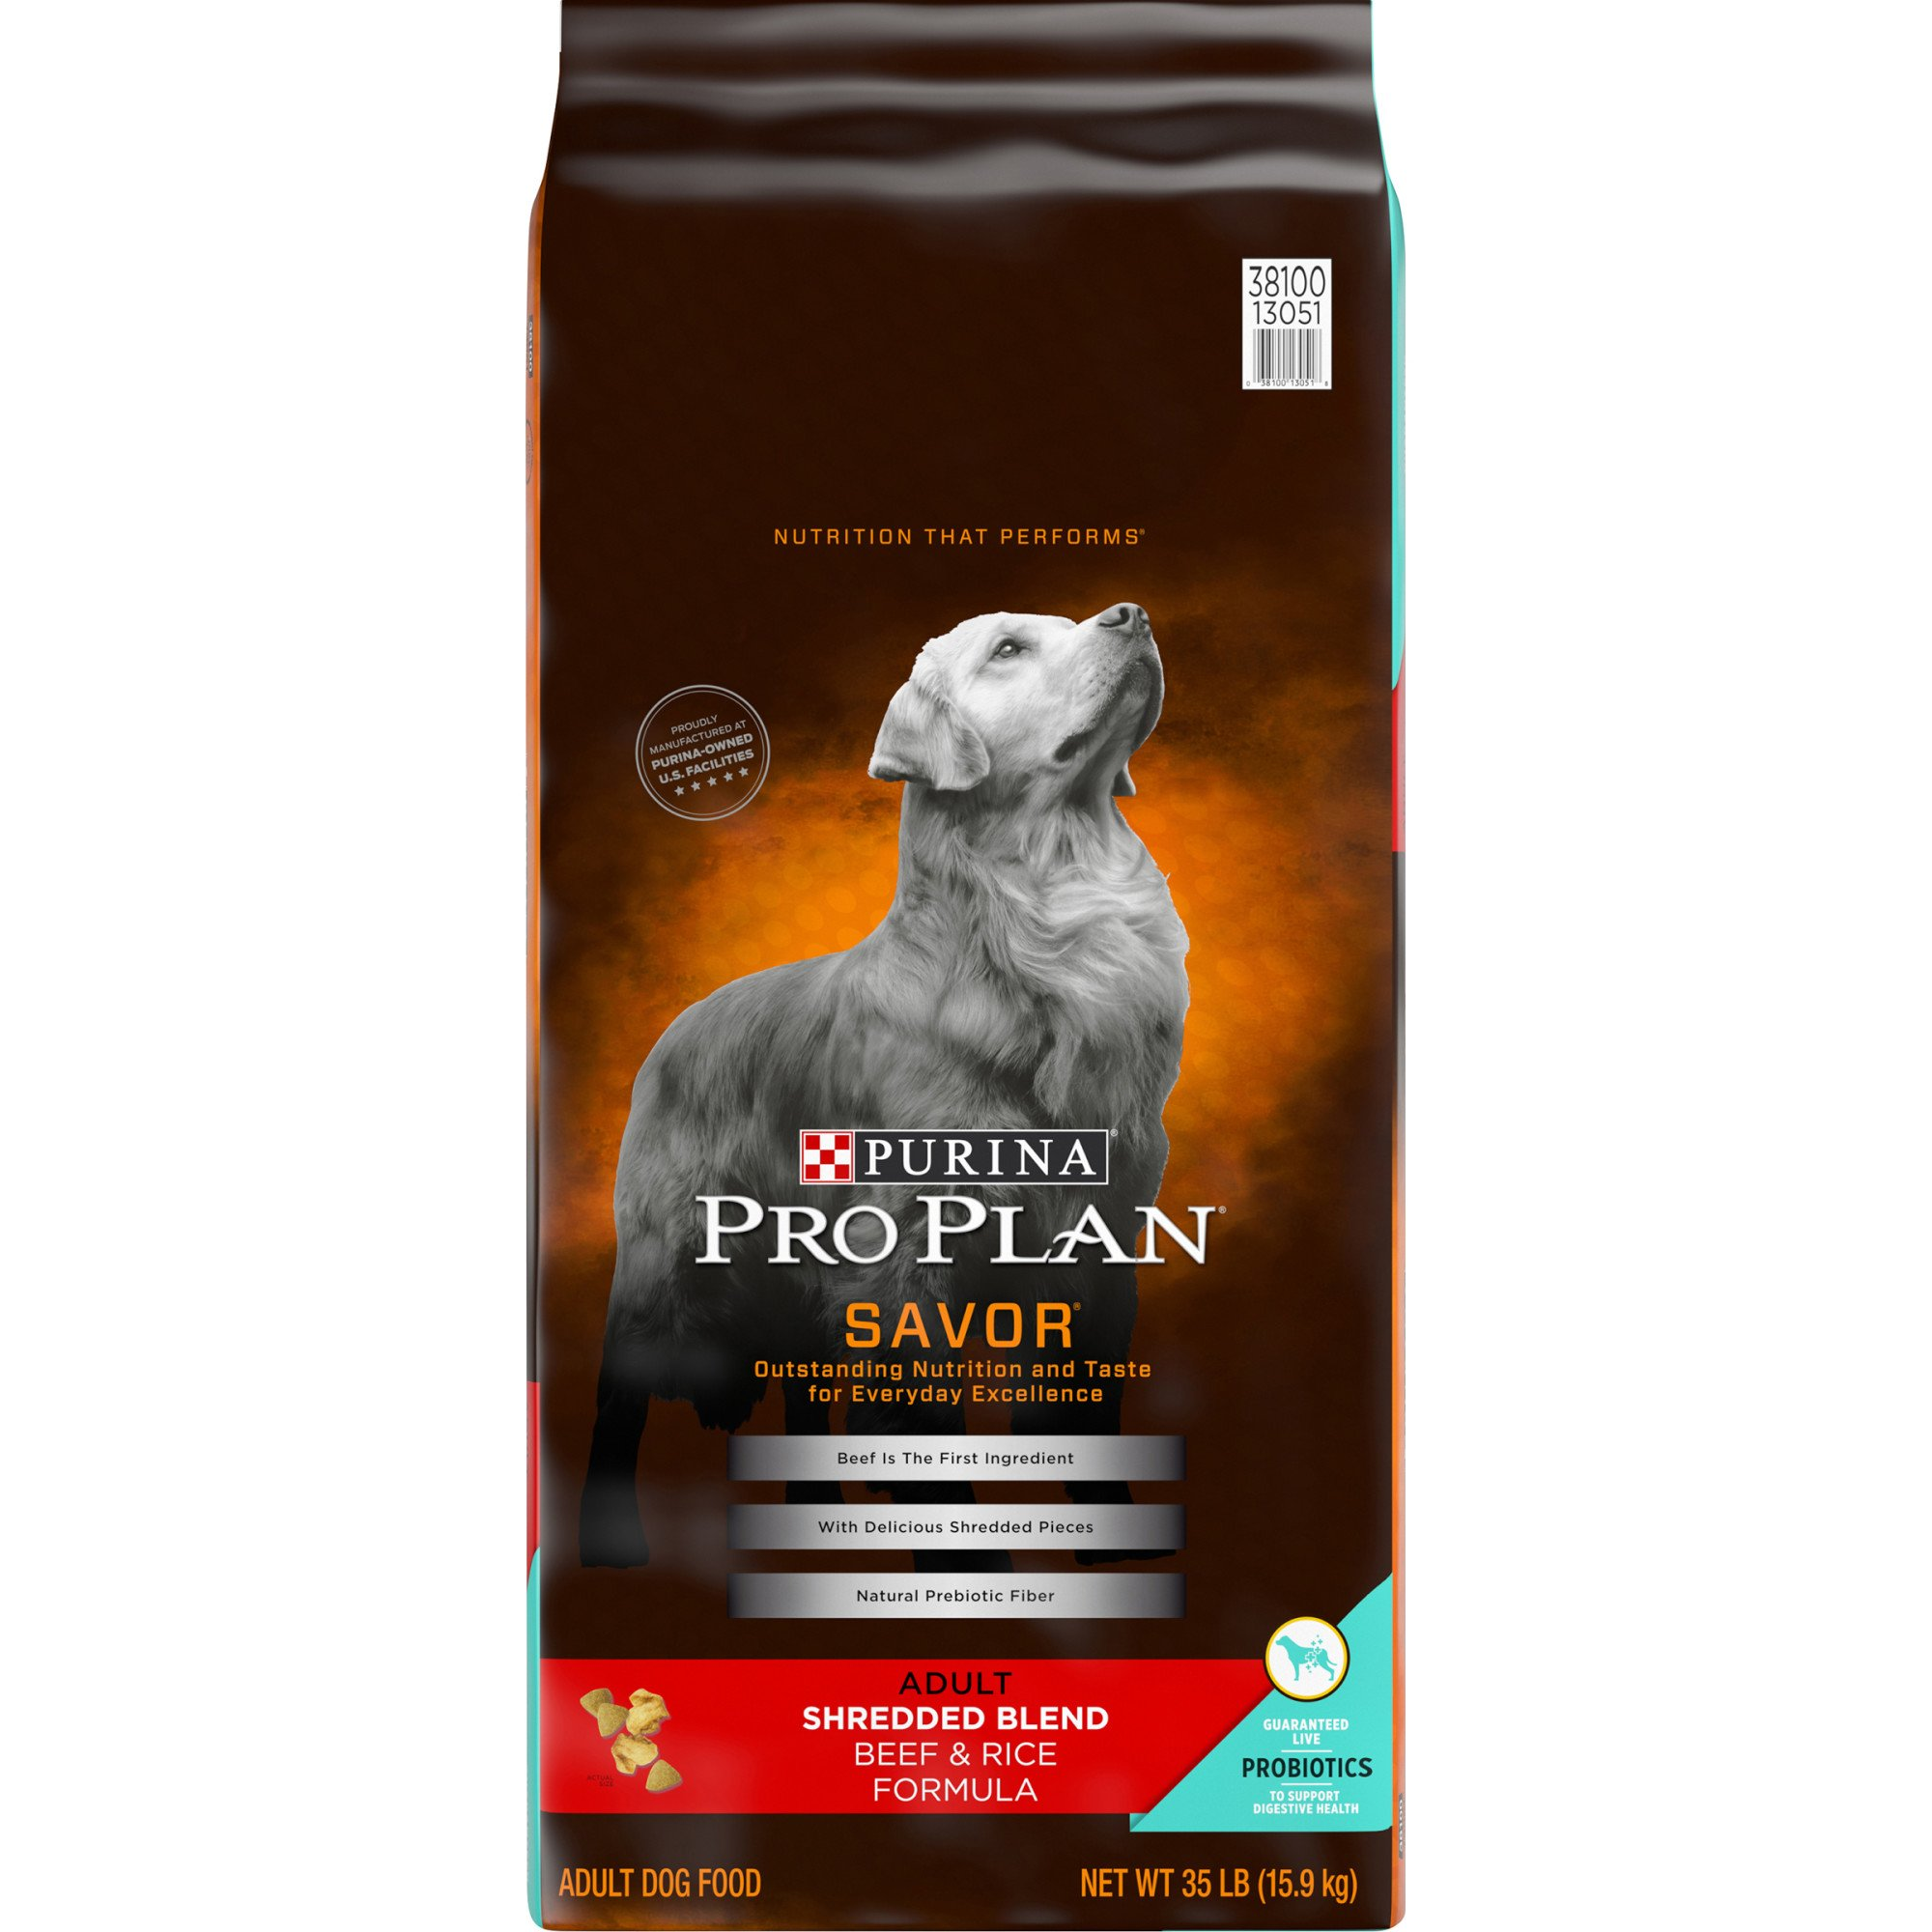 Pro Plan Savor Shredded Blend Beef & Rice Adult Dog Food